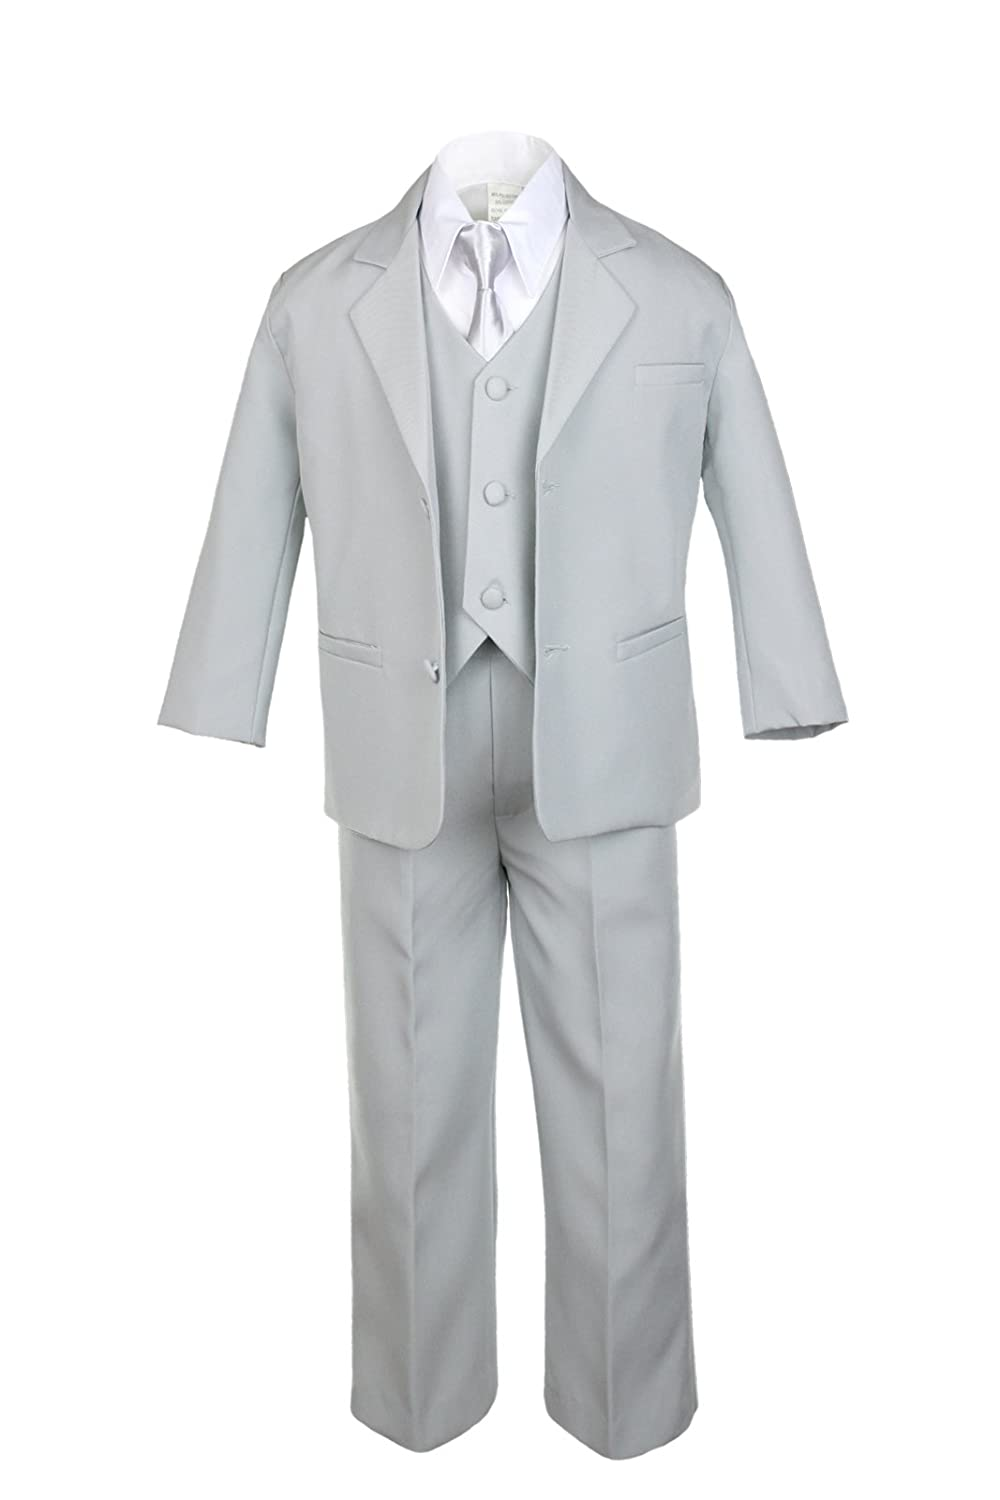 Unotux 6pc Boy Gray Vest Set Suit with Satin Silver Necktie Outfits Baby to Teen